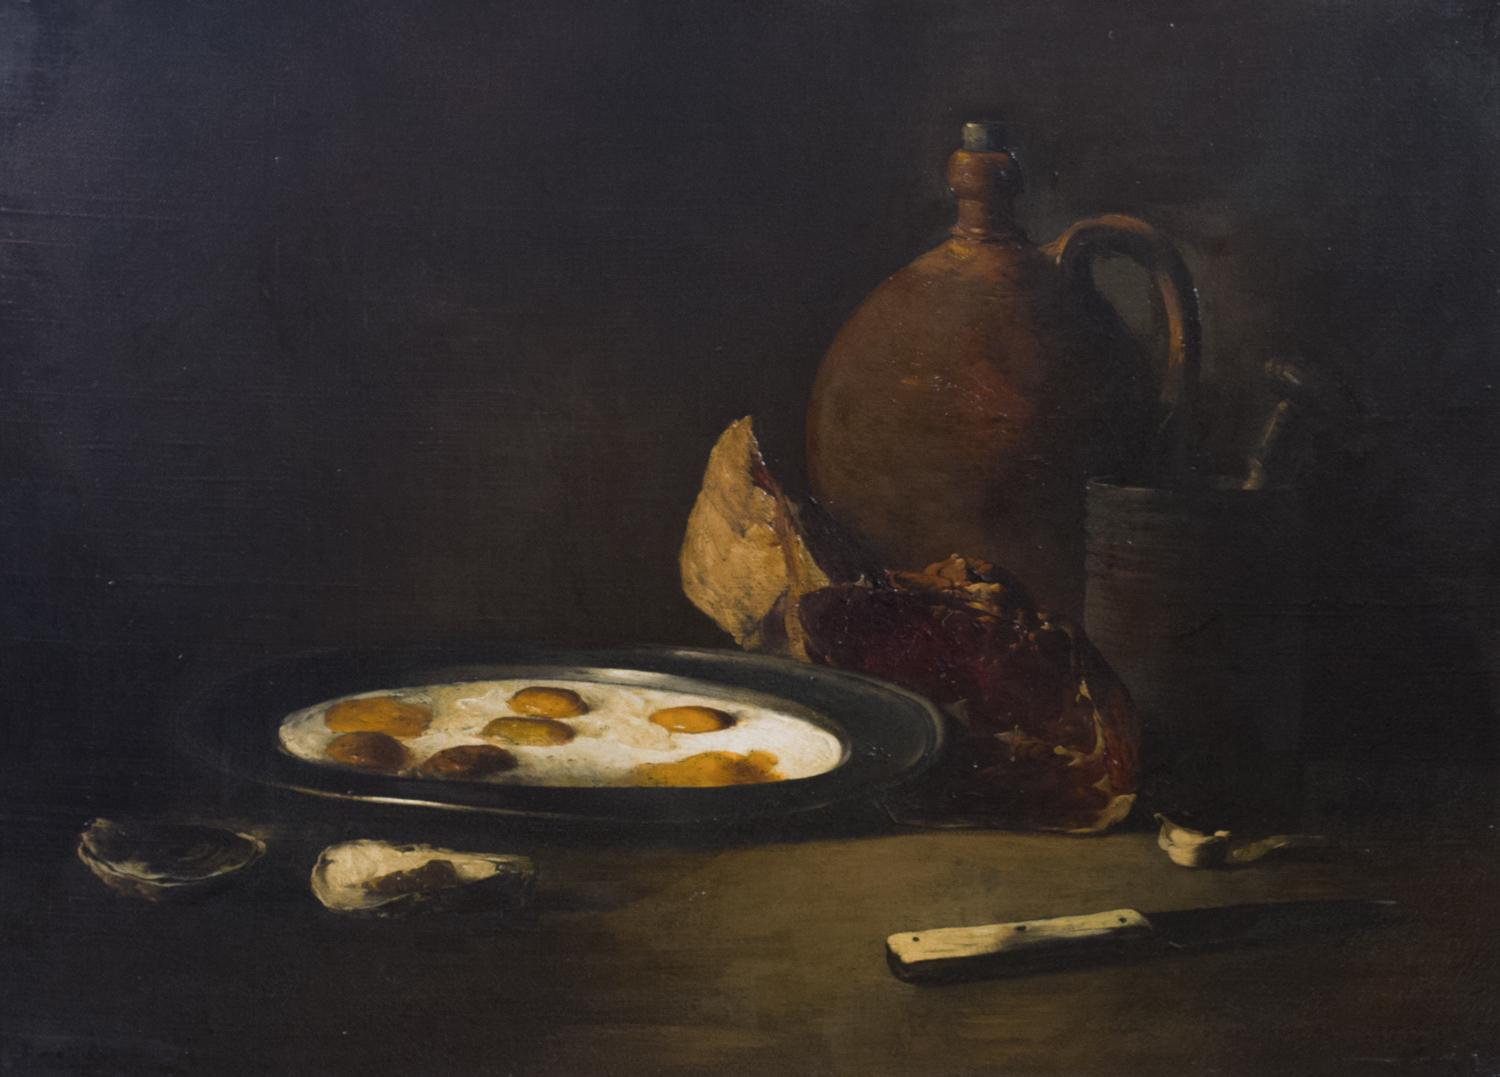 Théodule Ribot (French, 1823–1891), Kitchen Still Life, 19th century.